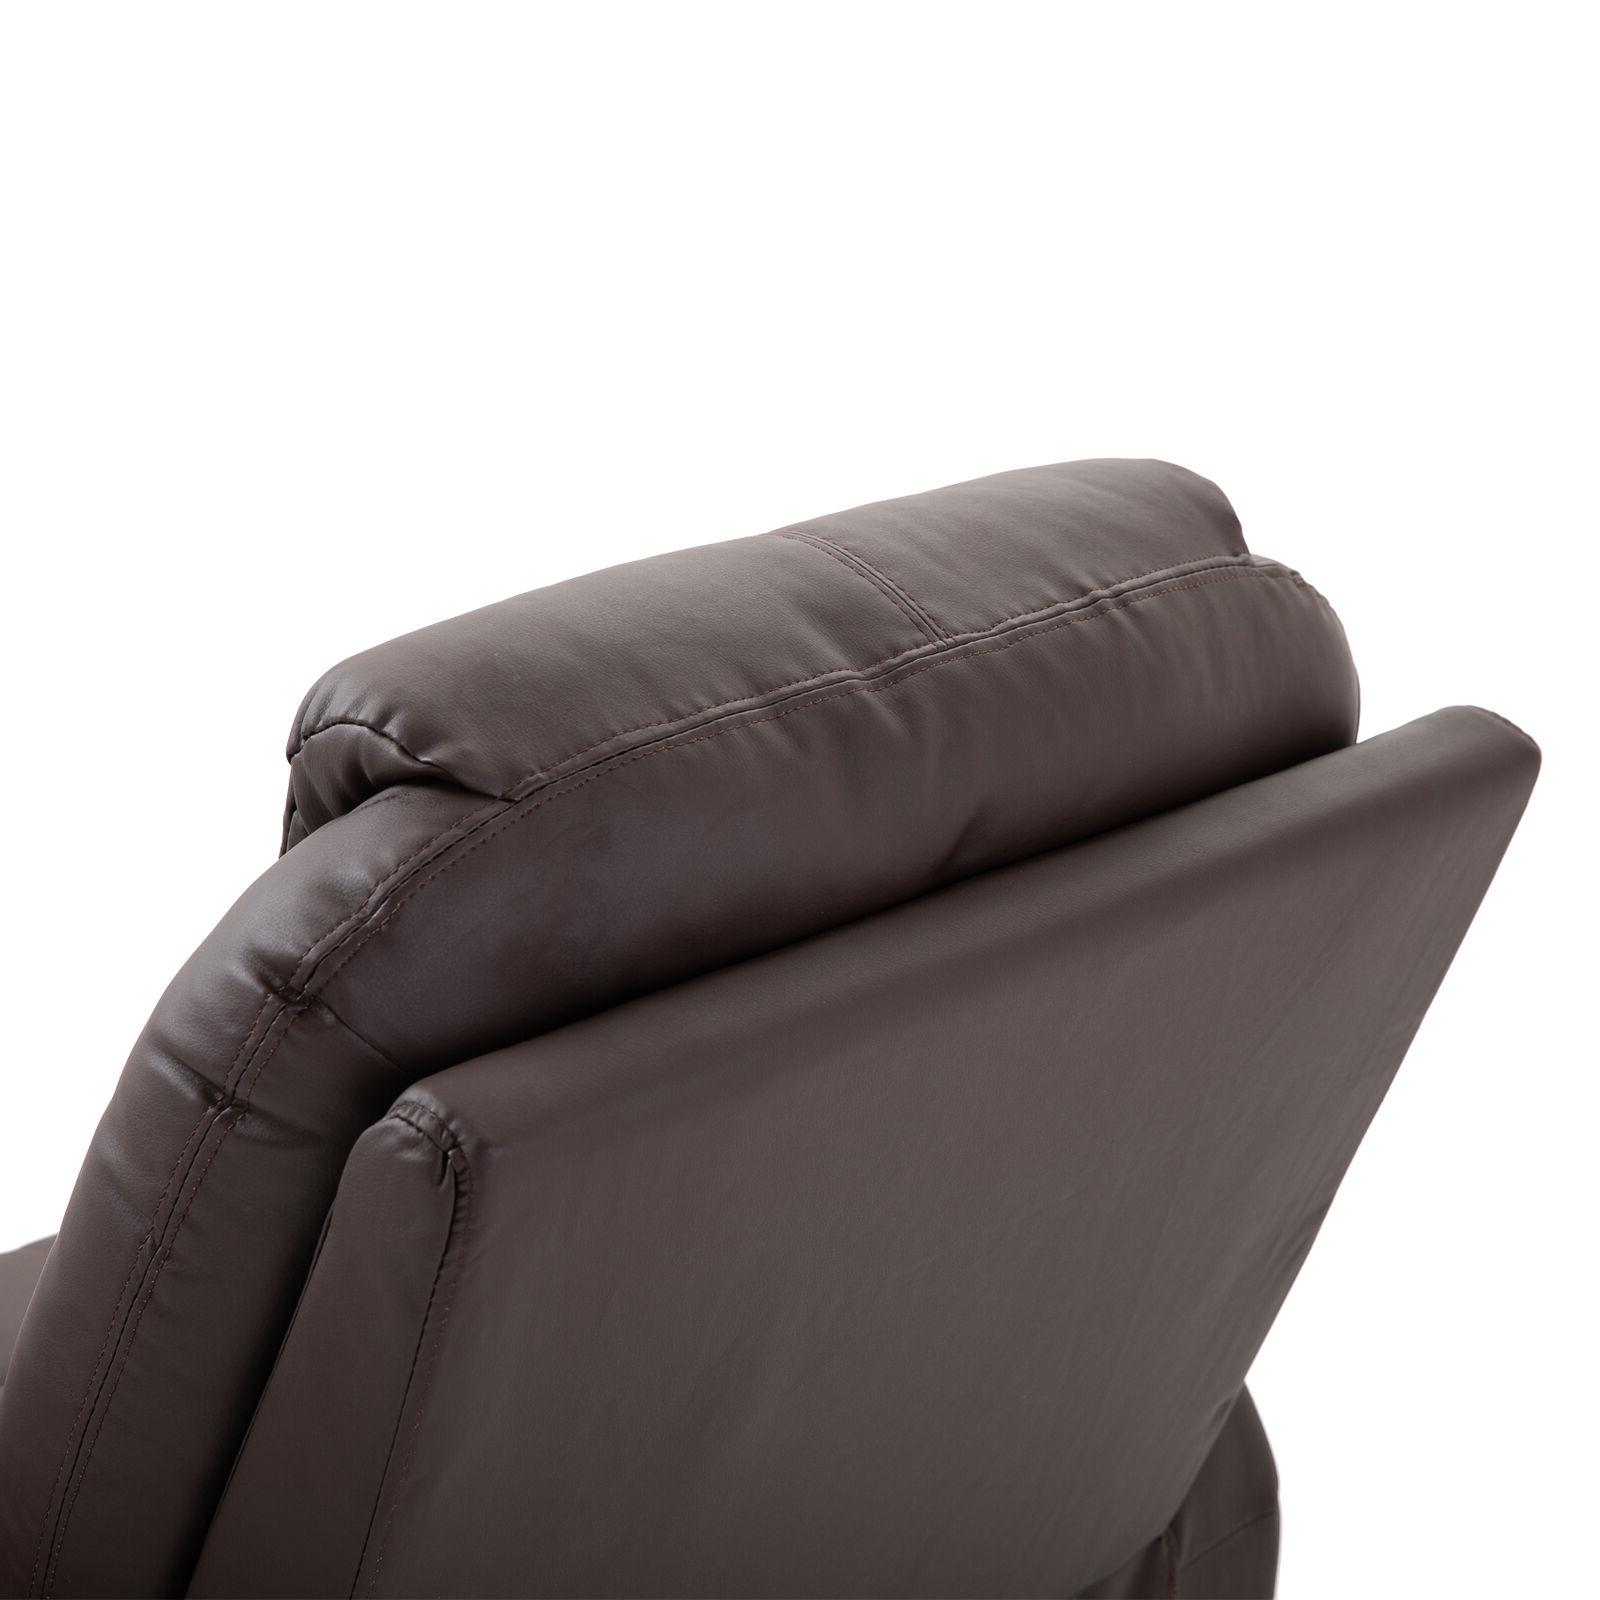 Massage Vibrating Heated Chair with Remote Control